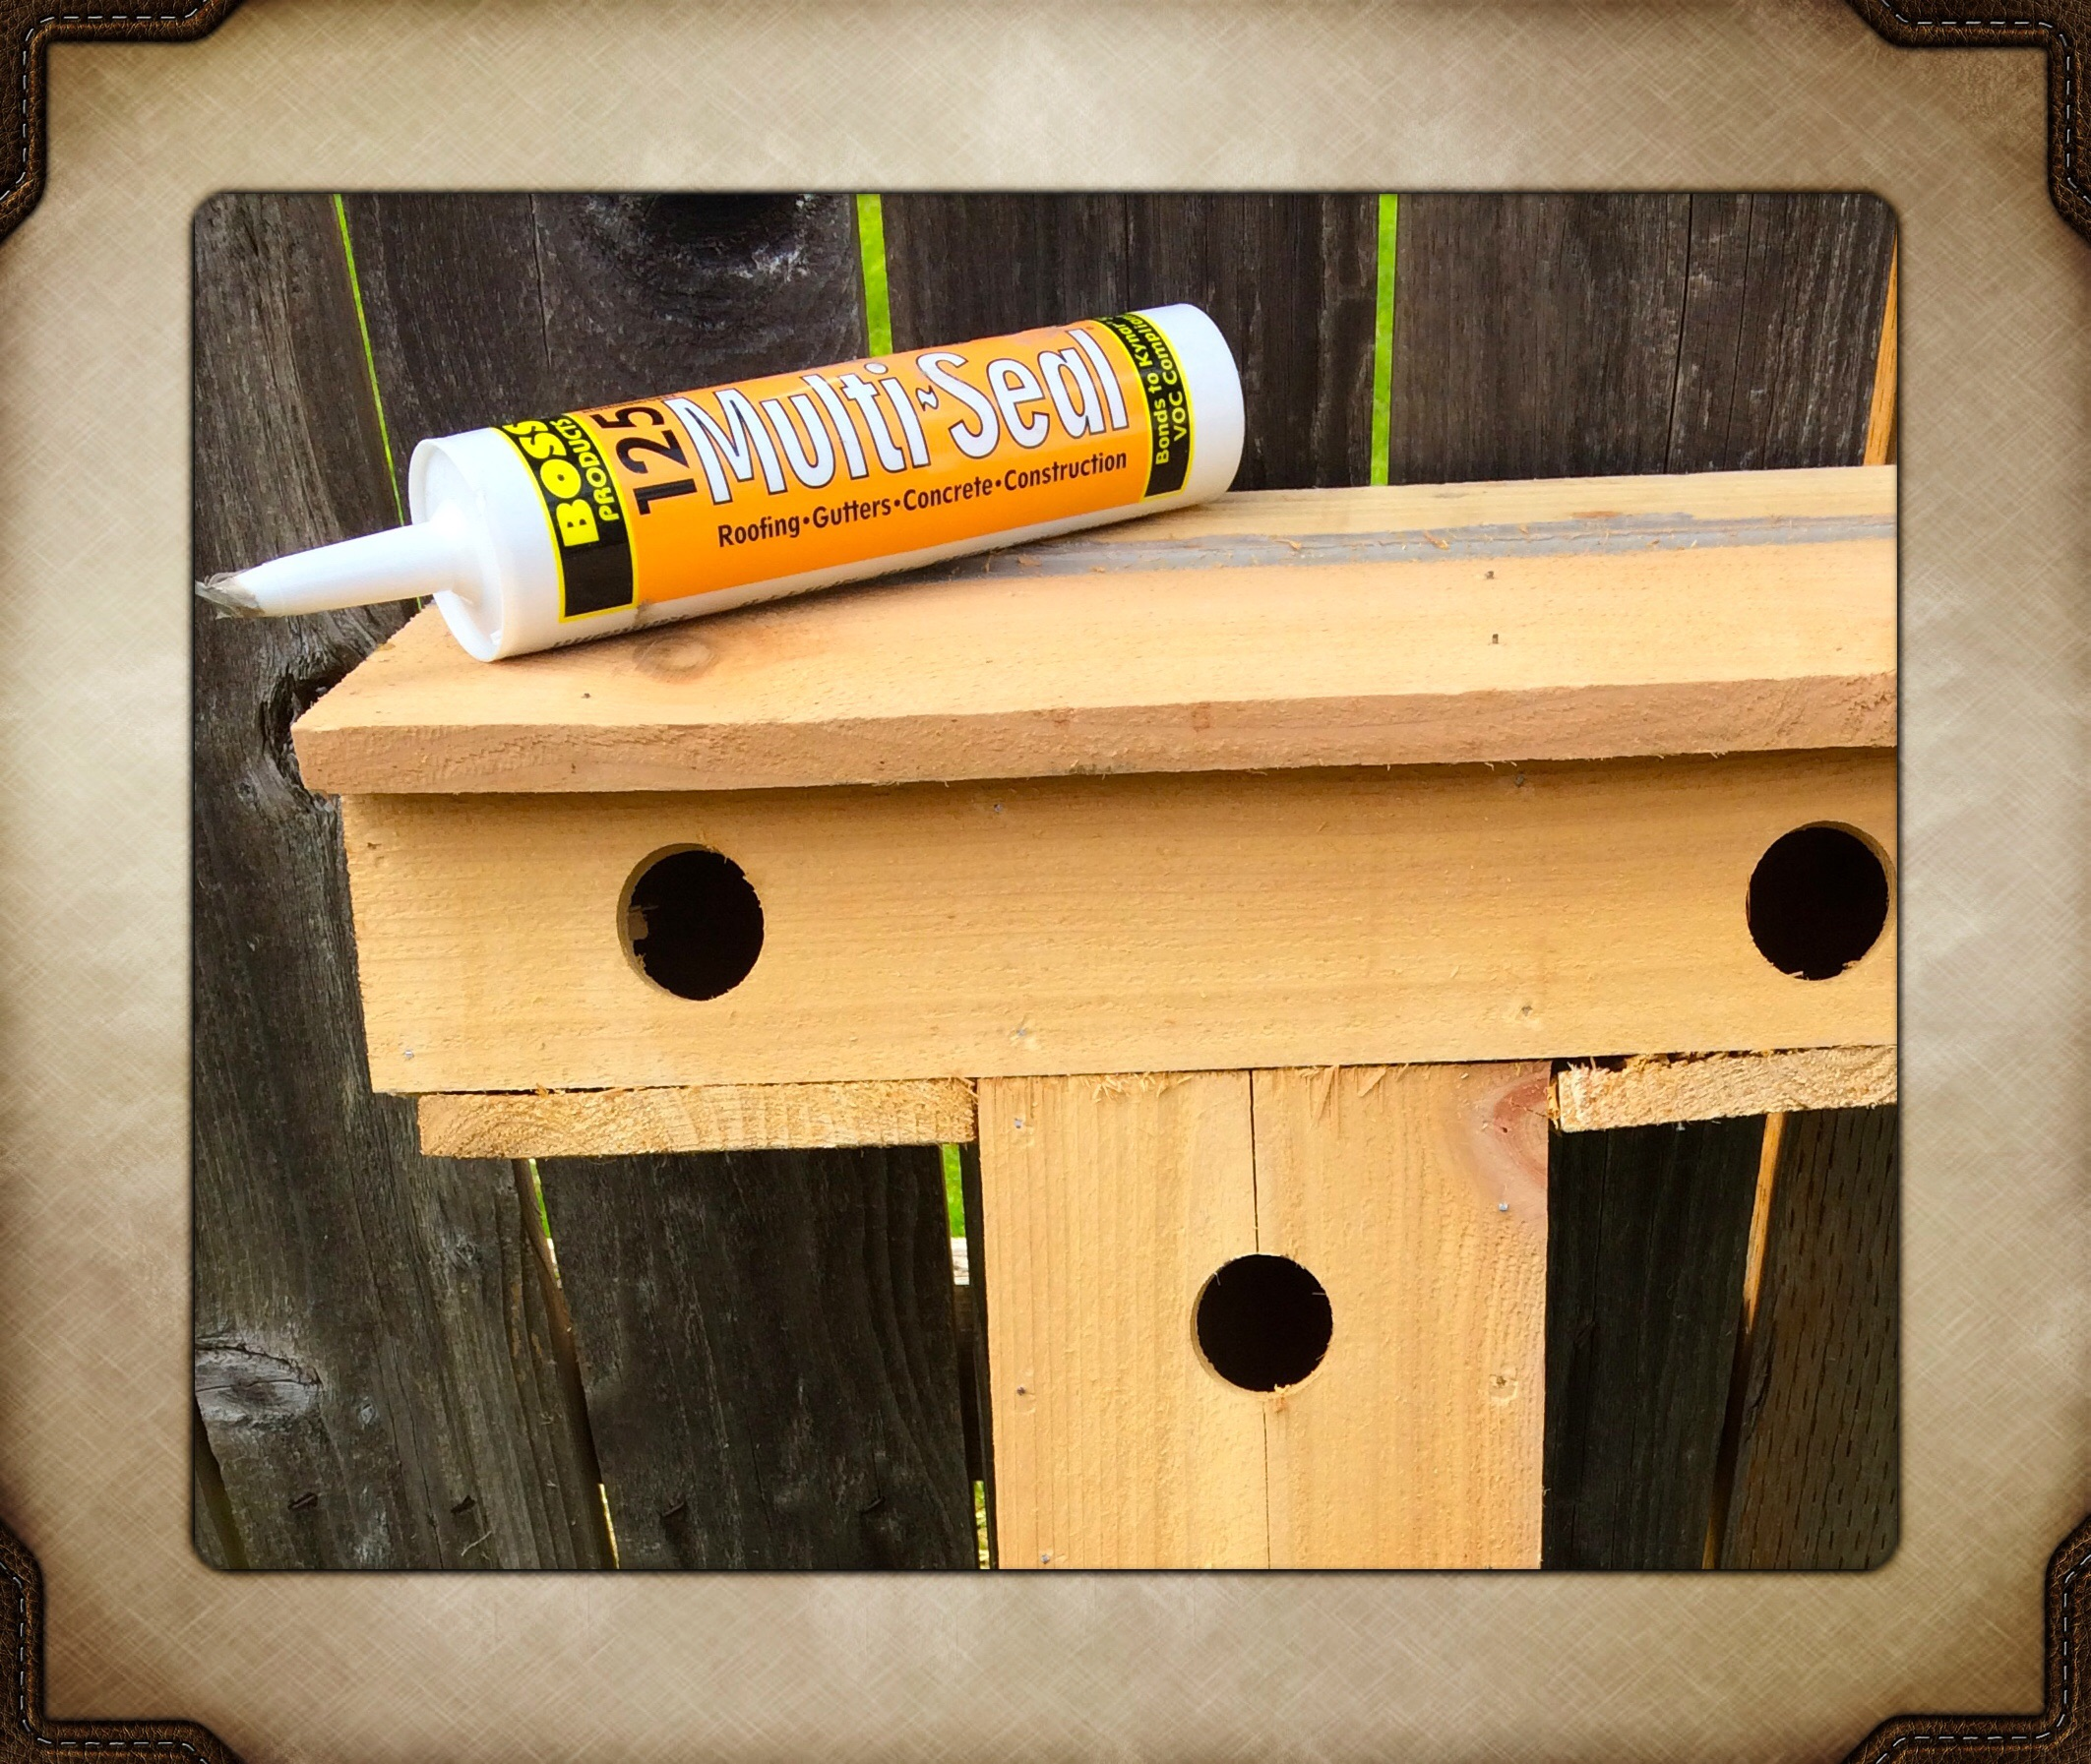 Built a bird house this weekend & finished off with BOSS 125